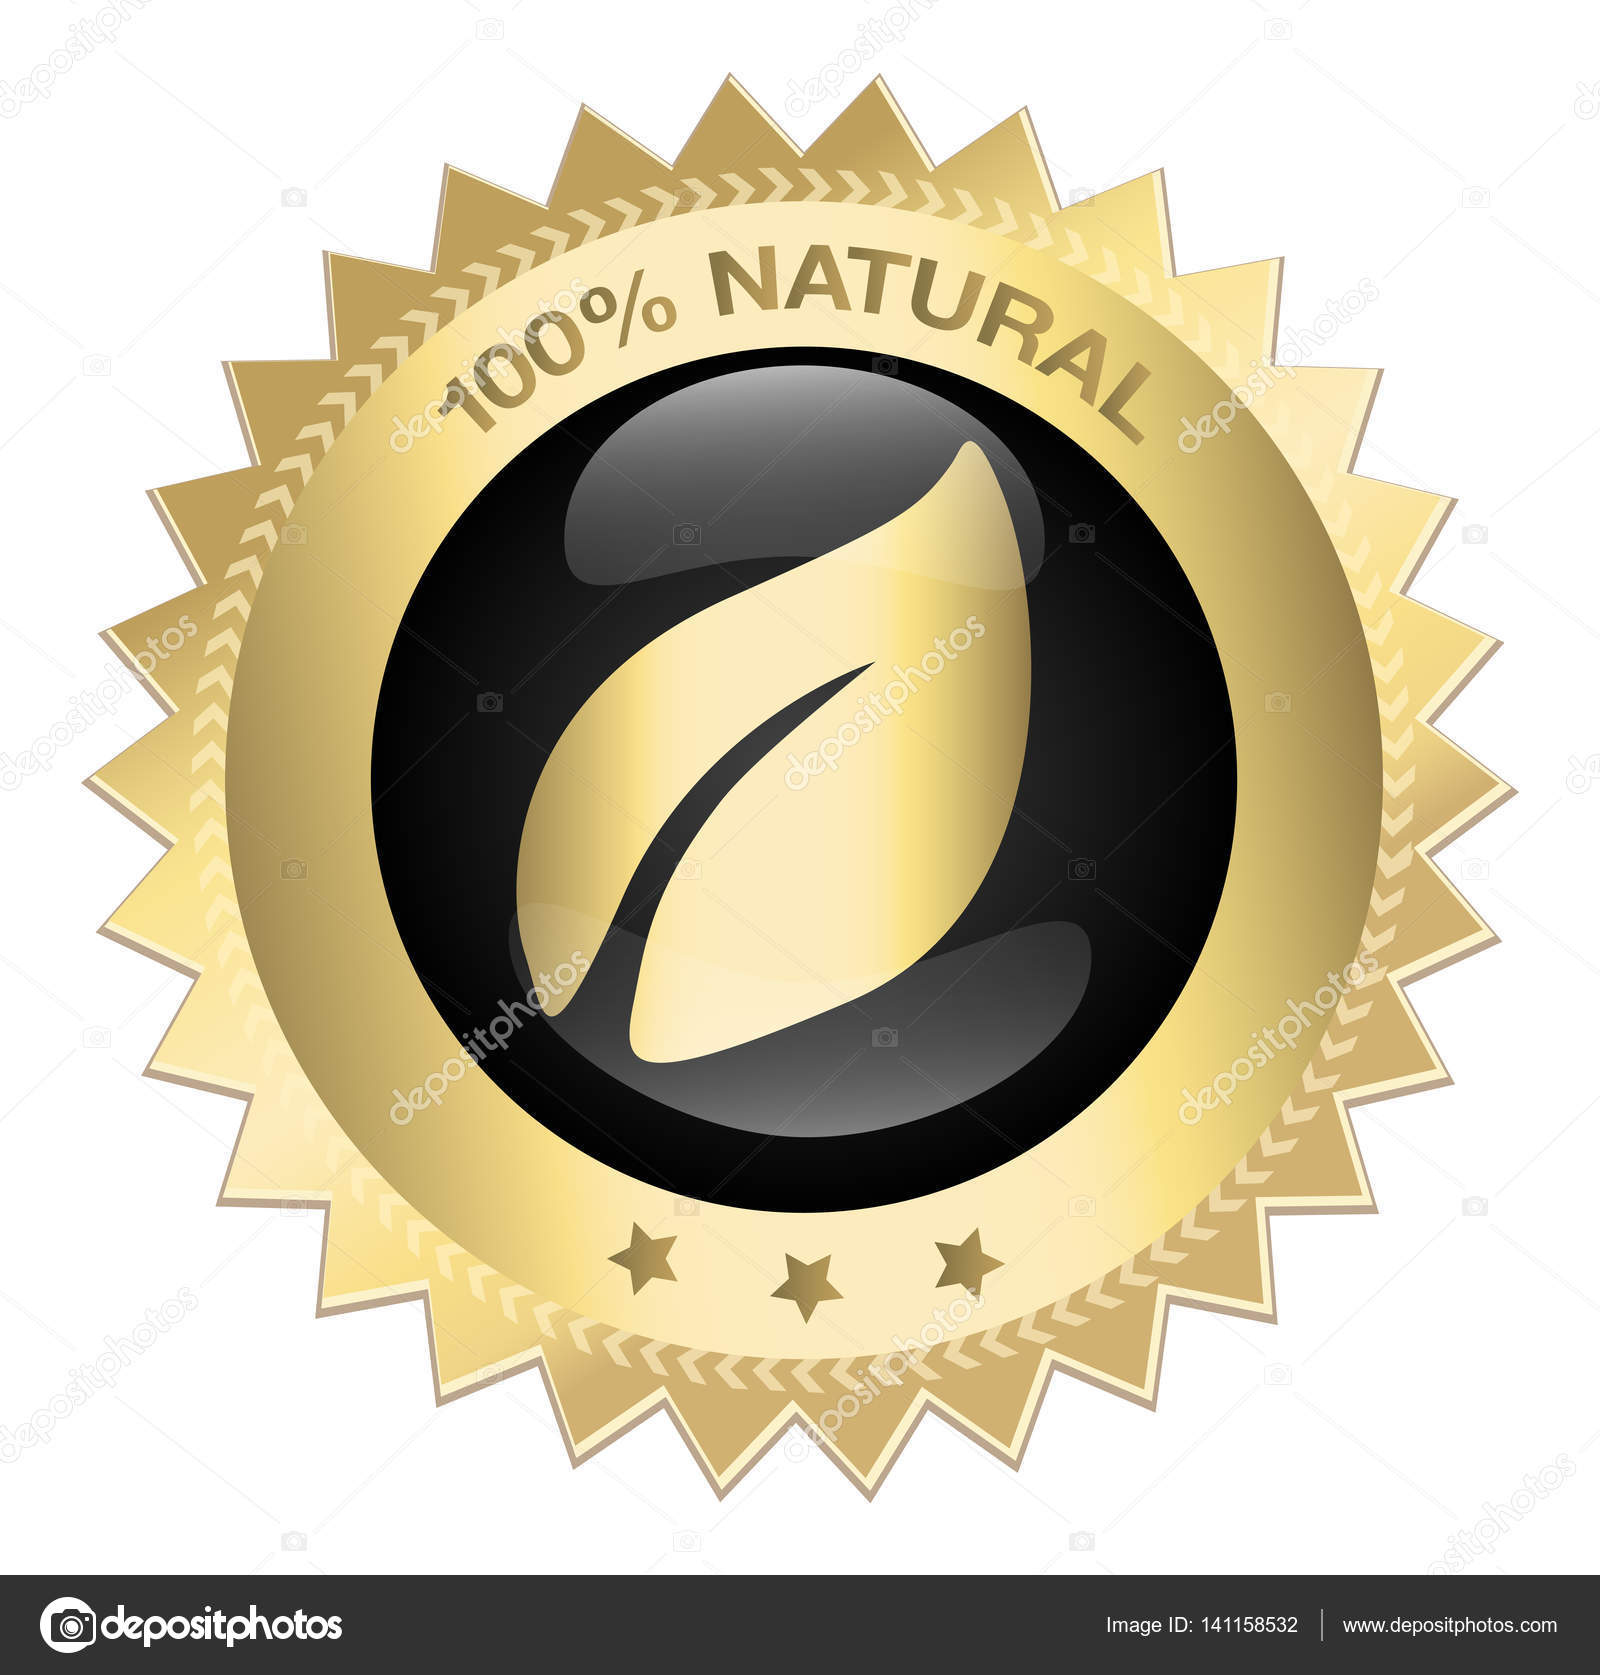 100 natural guaranteed seal or icon with leaf symbol stock vector 100 natural guaranteed seal or icon with leaf symbol stock vector buycottarizona Image collections